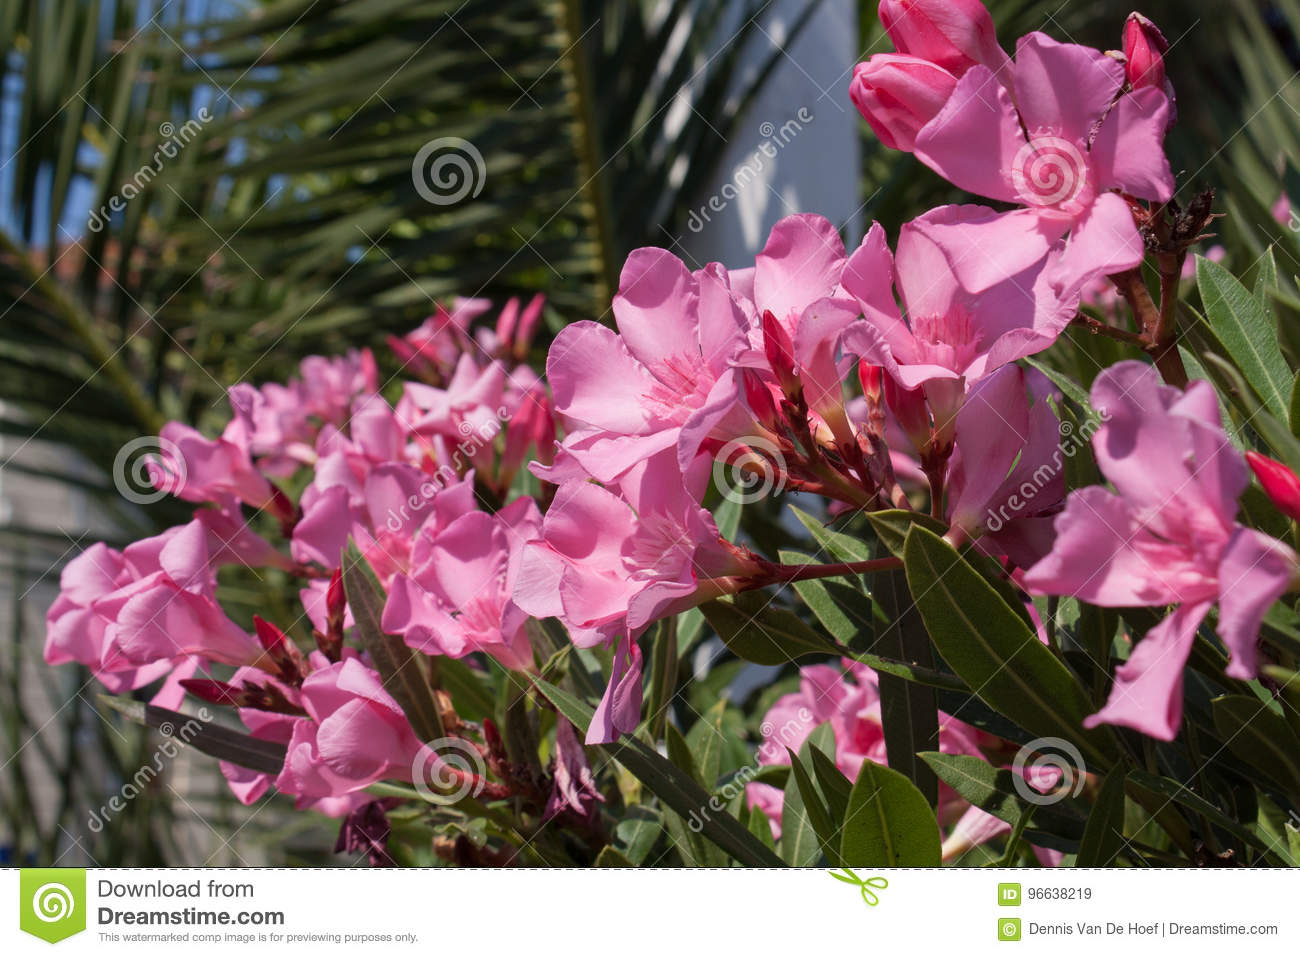 Pink flower in the sun.